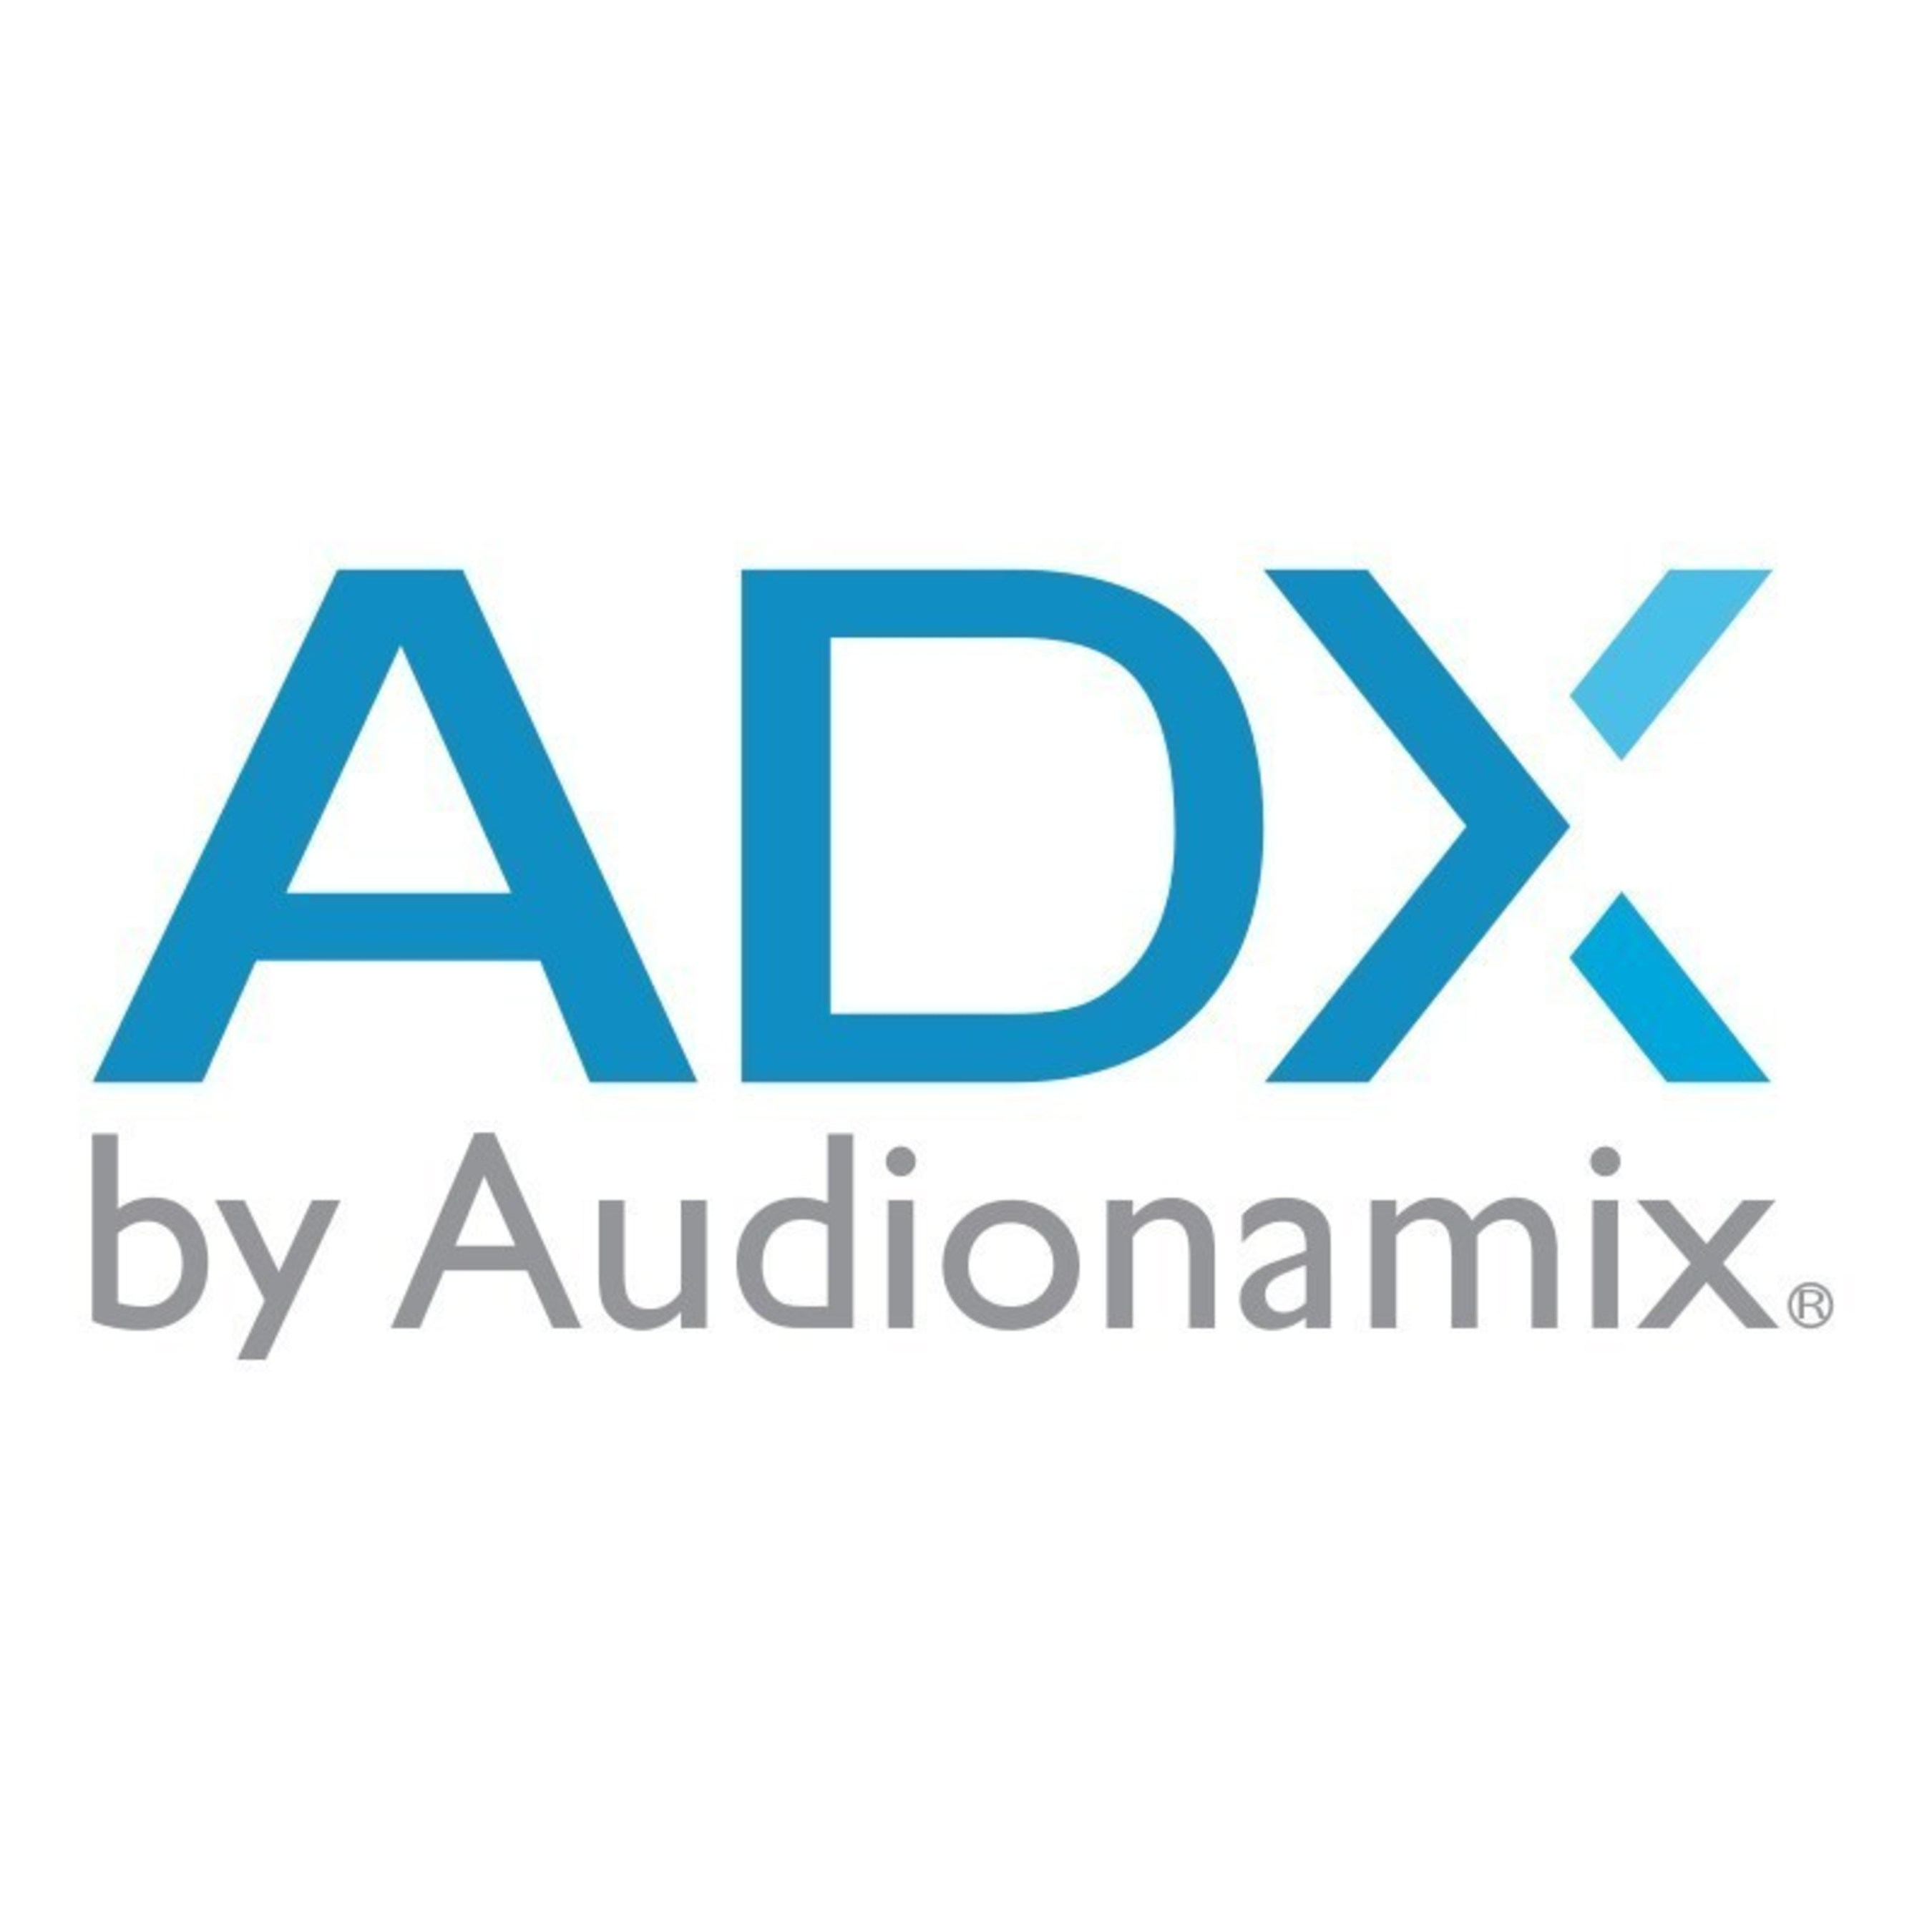 Audionamix releases the highly anticipated Version 3 upgrade